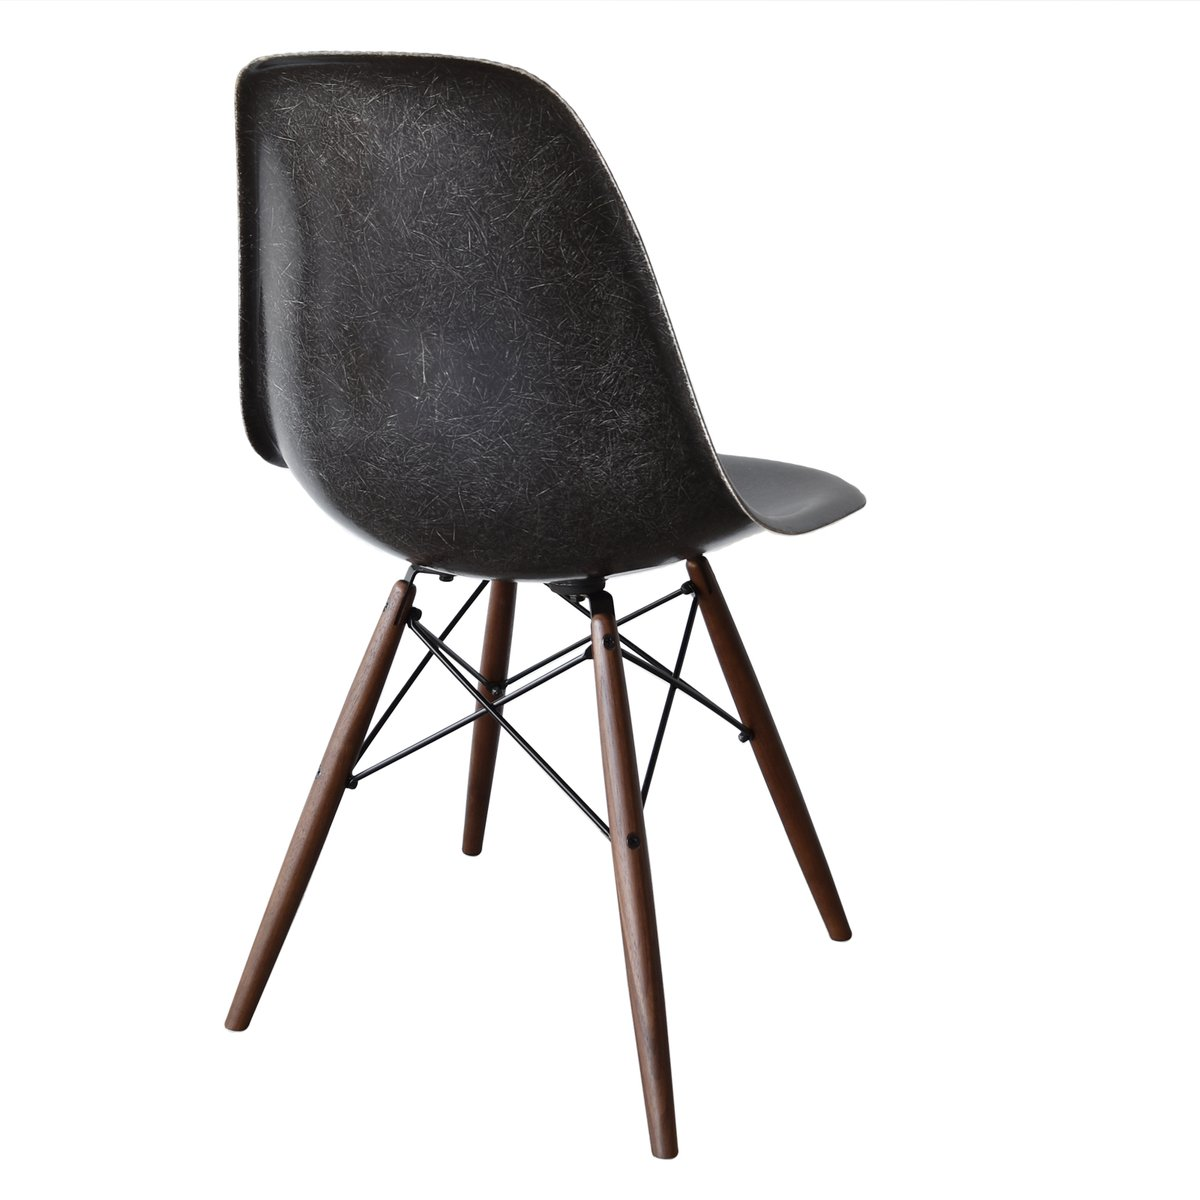 black dsw chair by charles and ray eames for herman miller for sale at pamono. Black Bedroom Furniture Sets. Home Design Ideas